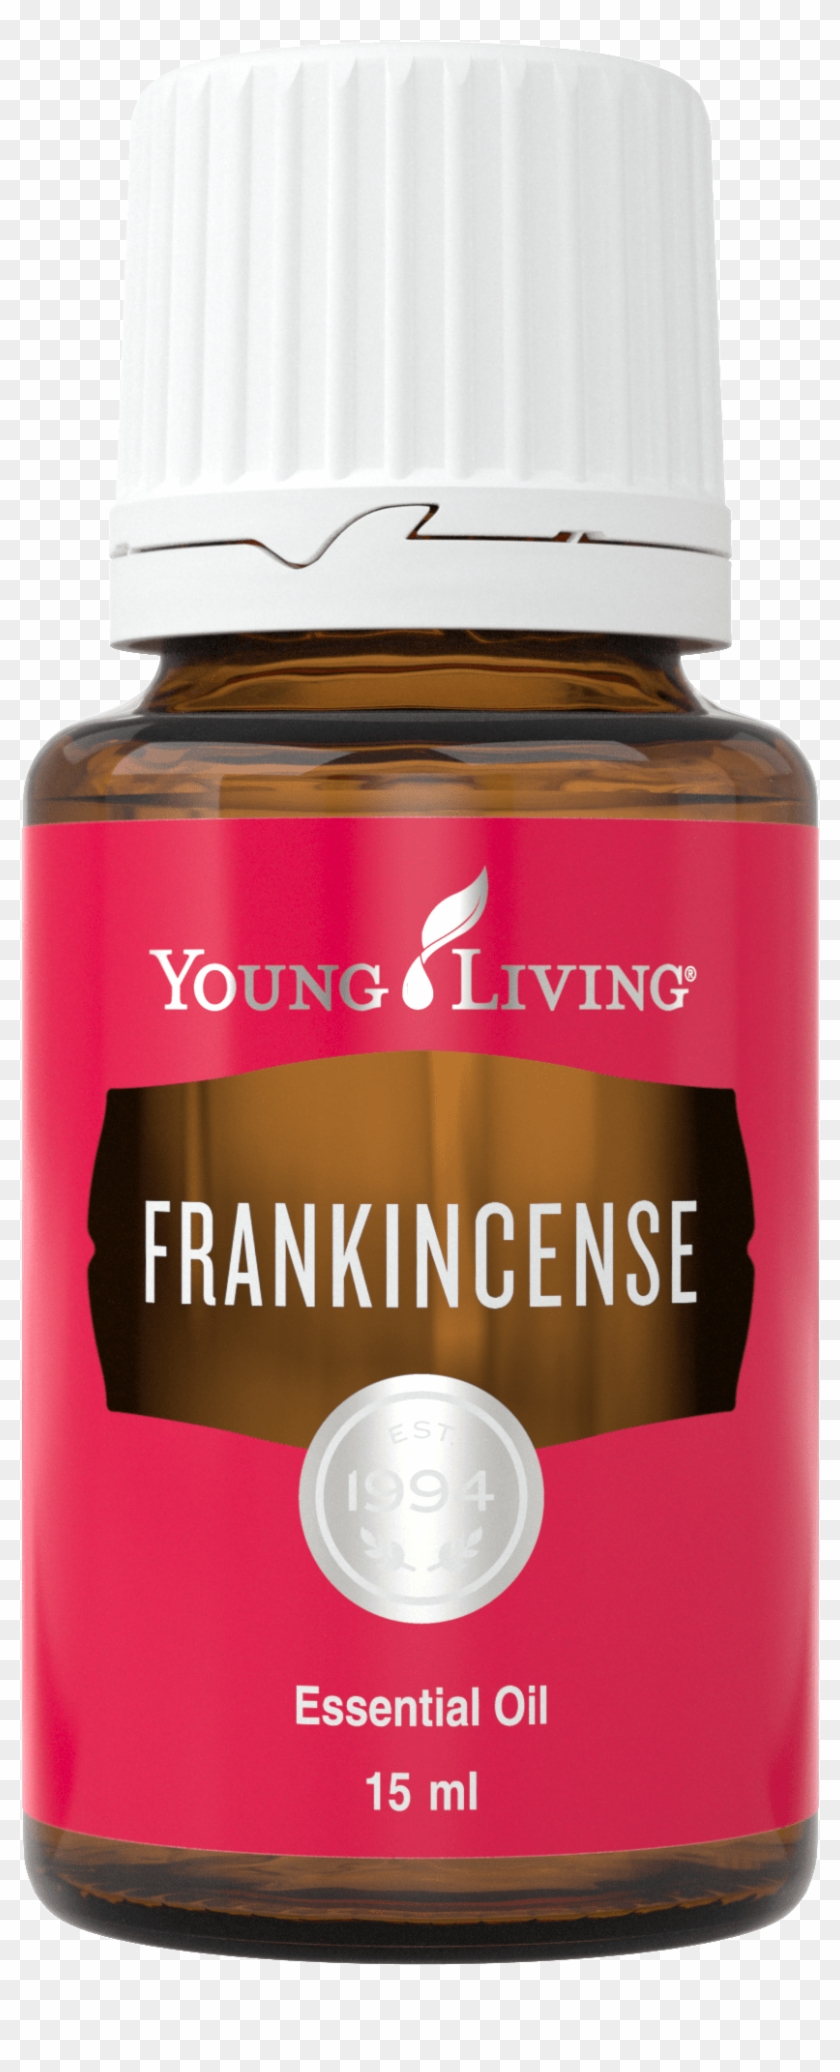 Young Living Frankincense Essential Oil.